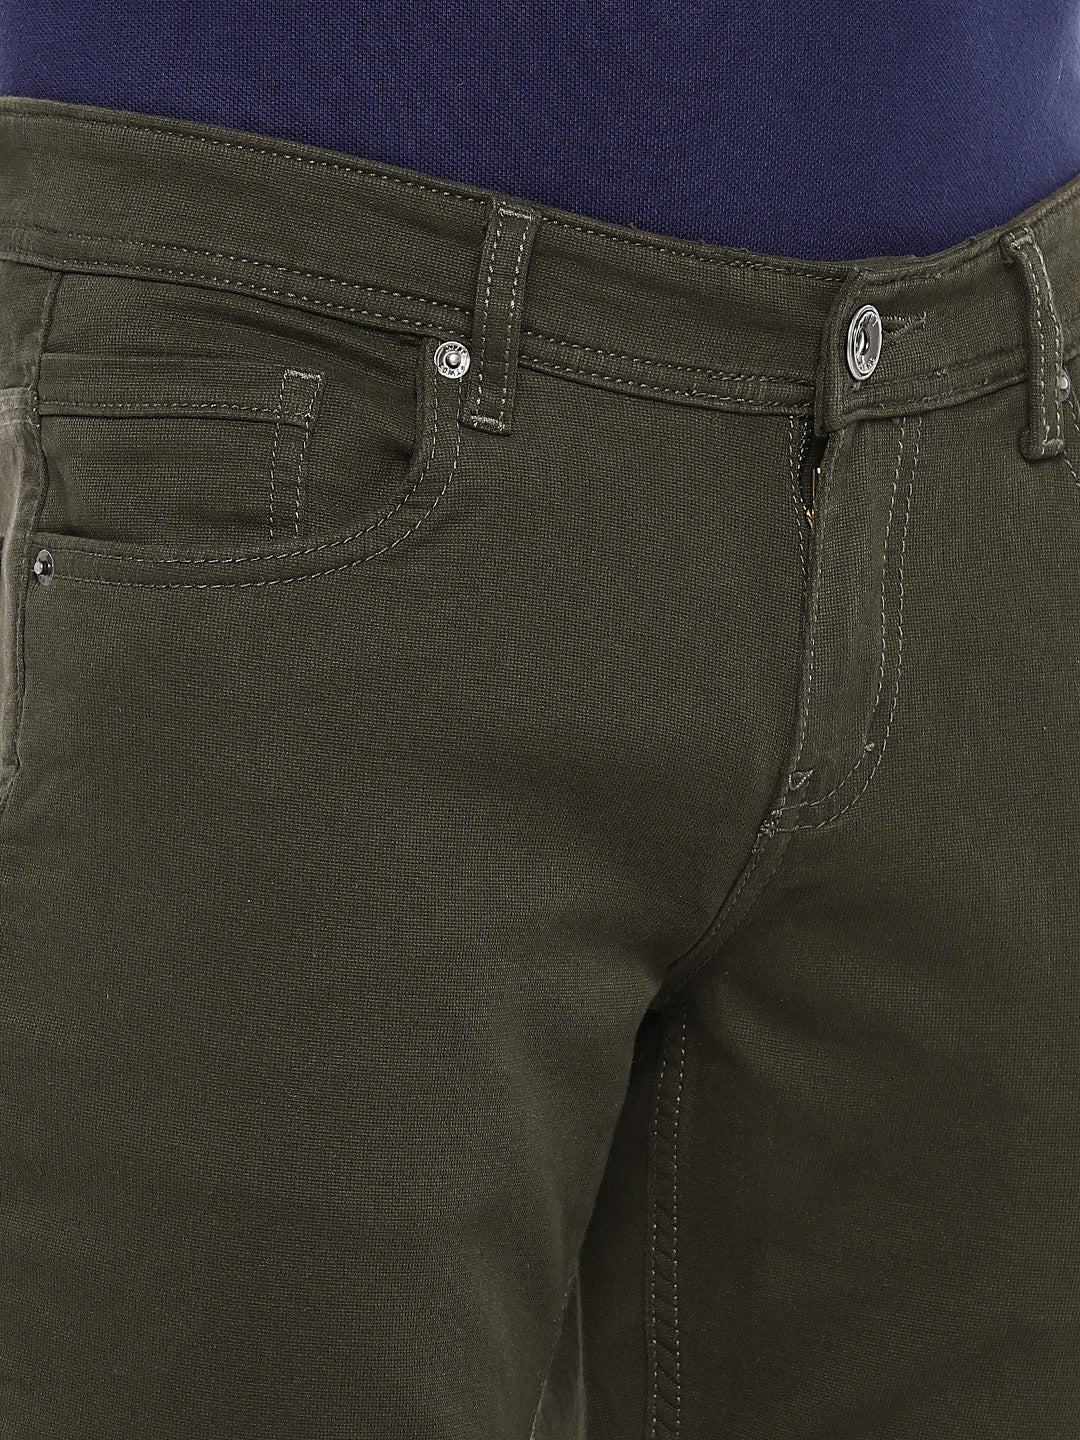 Olive Green Regular Fit Solid Chinos-5